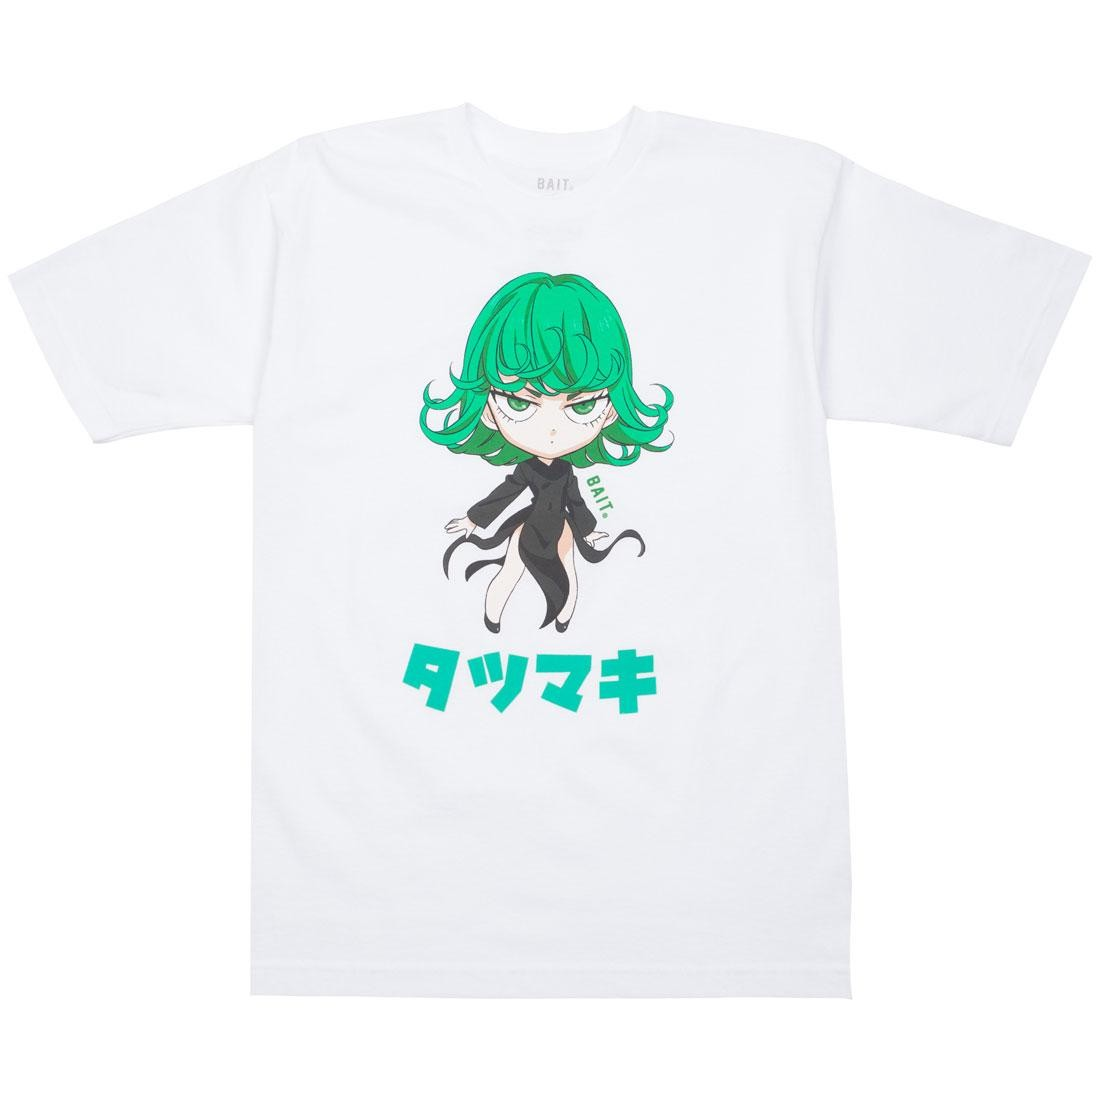 BAIT x One Punch Man Men Tatsumaki Chibi Tee (white)